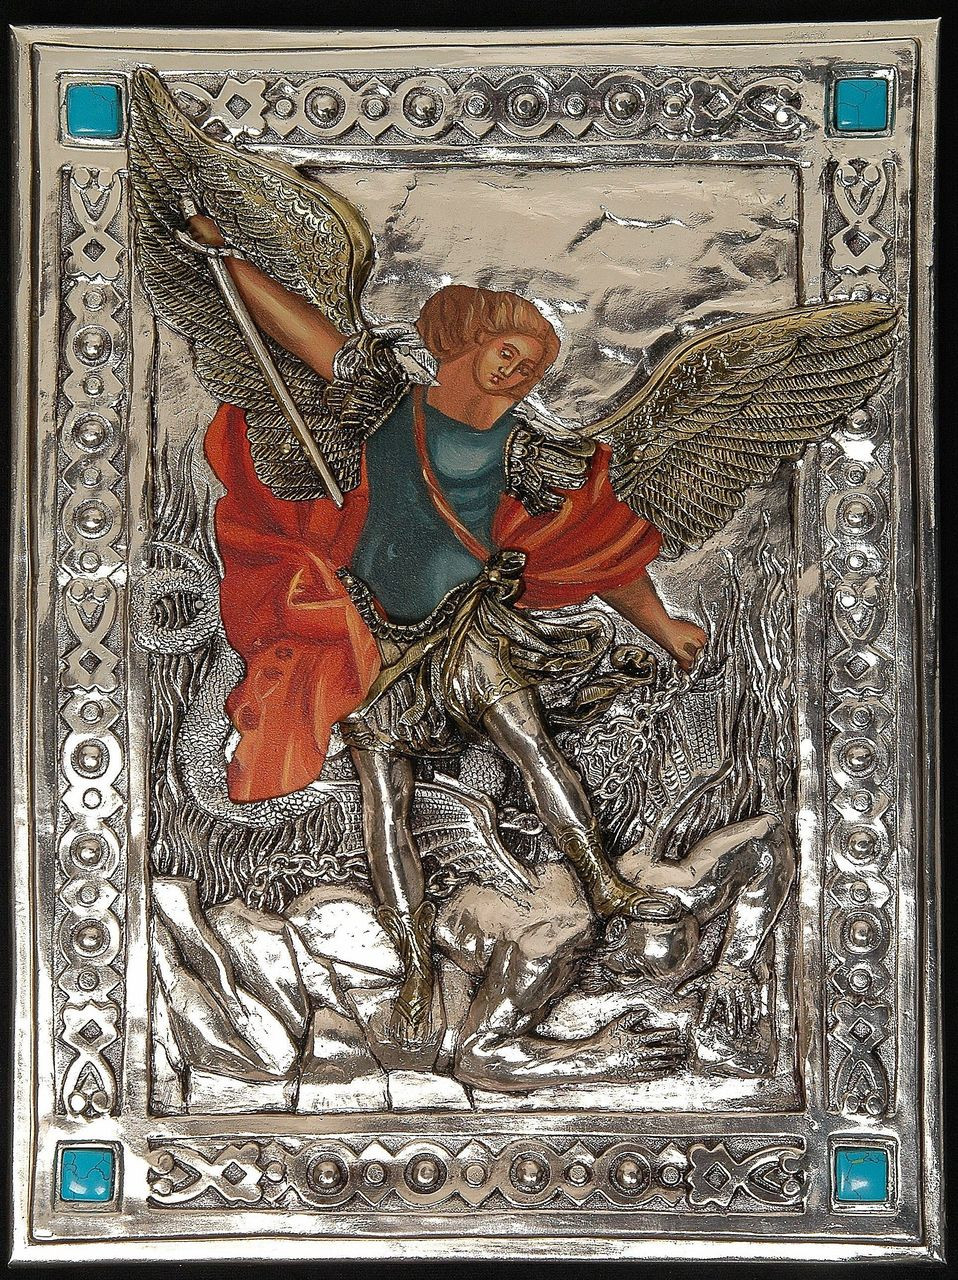 b5962b05 Icon of St Michael the Archangel | Painted Body | Silver and Turquoise  Accents | 10.5